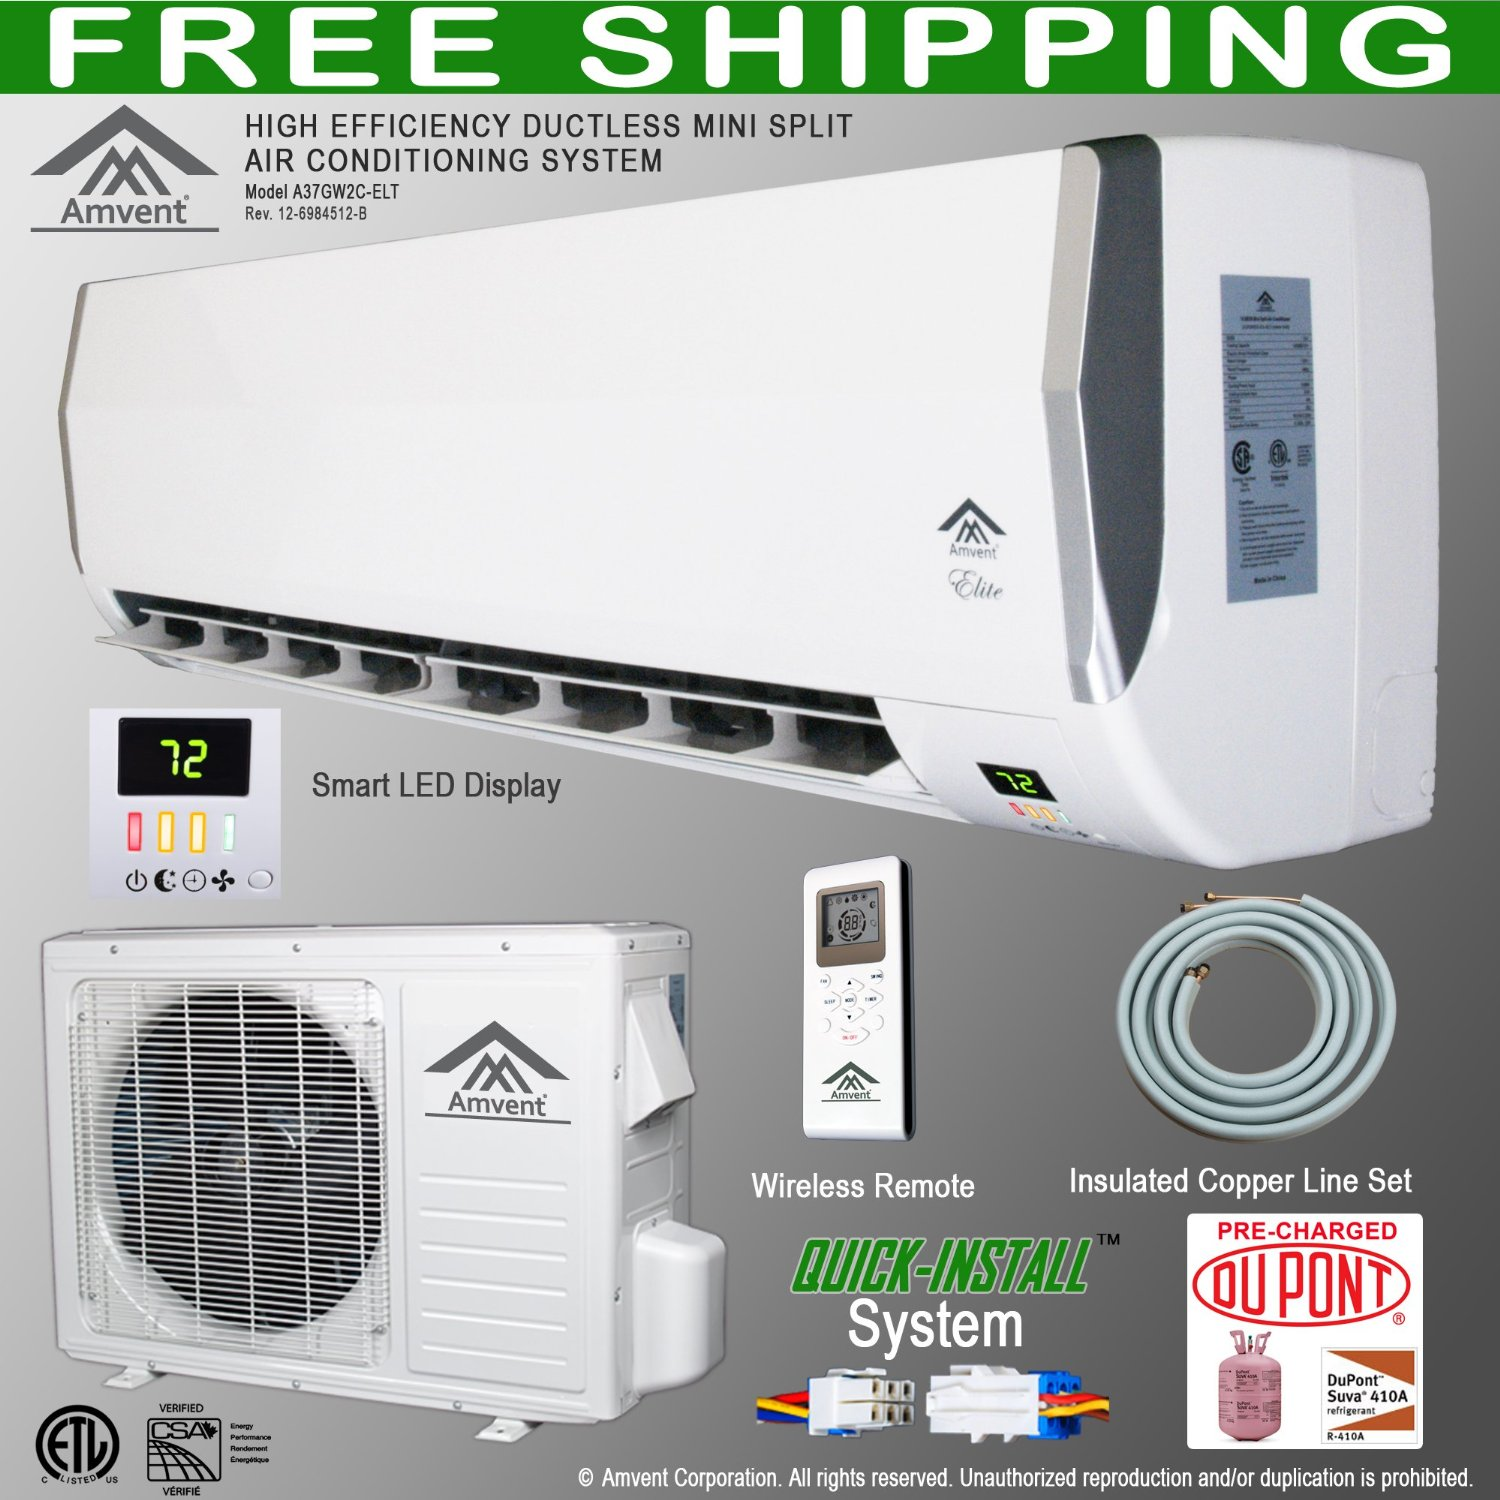 split air conditioners ductless air conditioners mini #1A8612